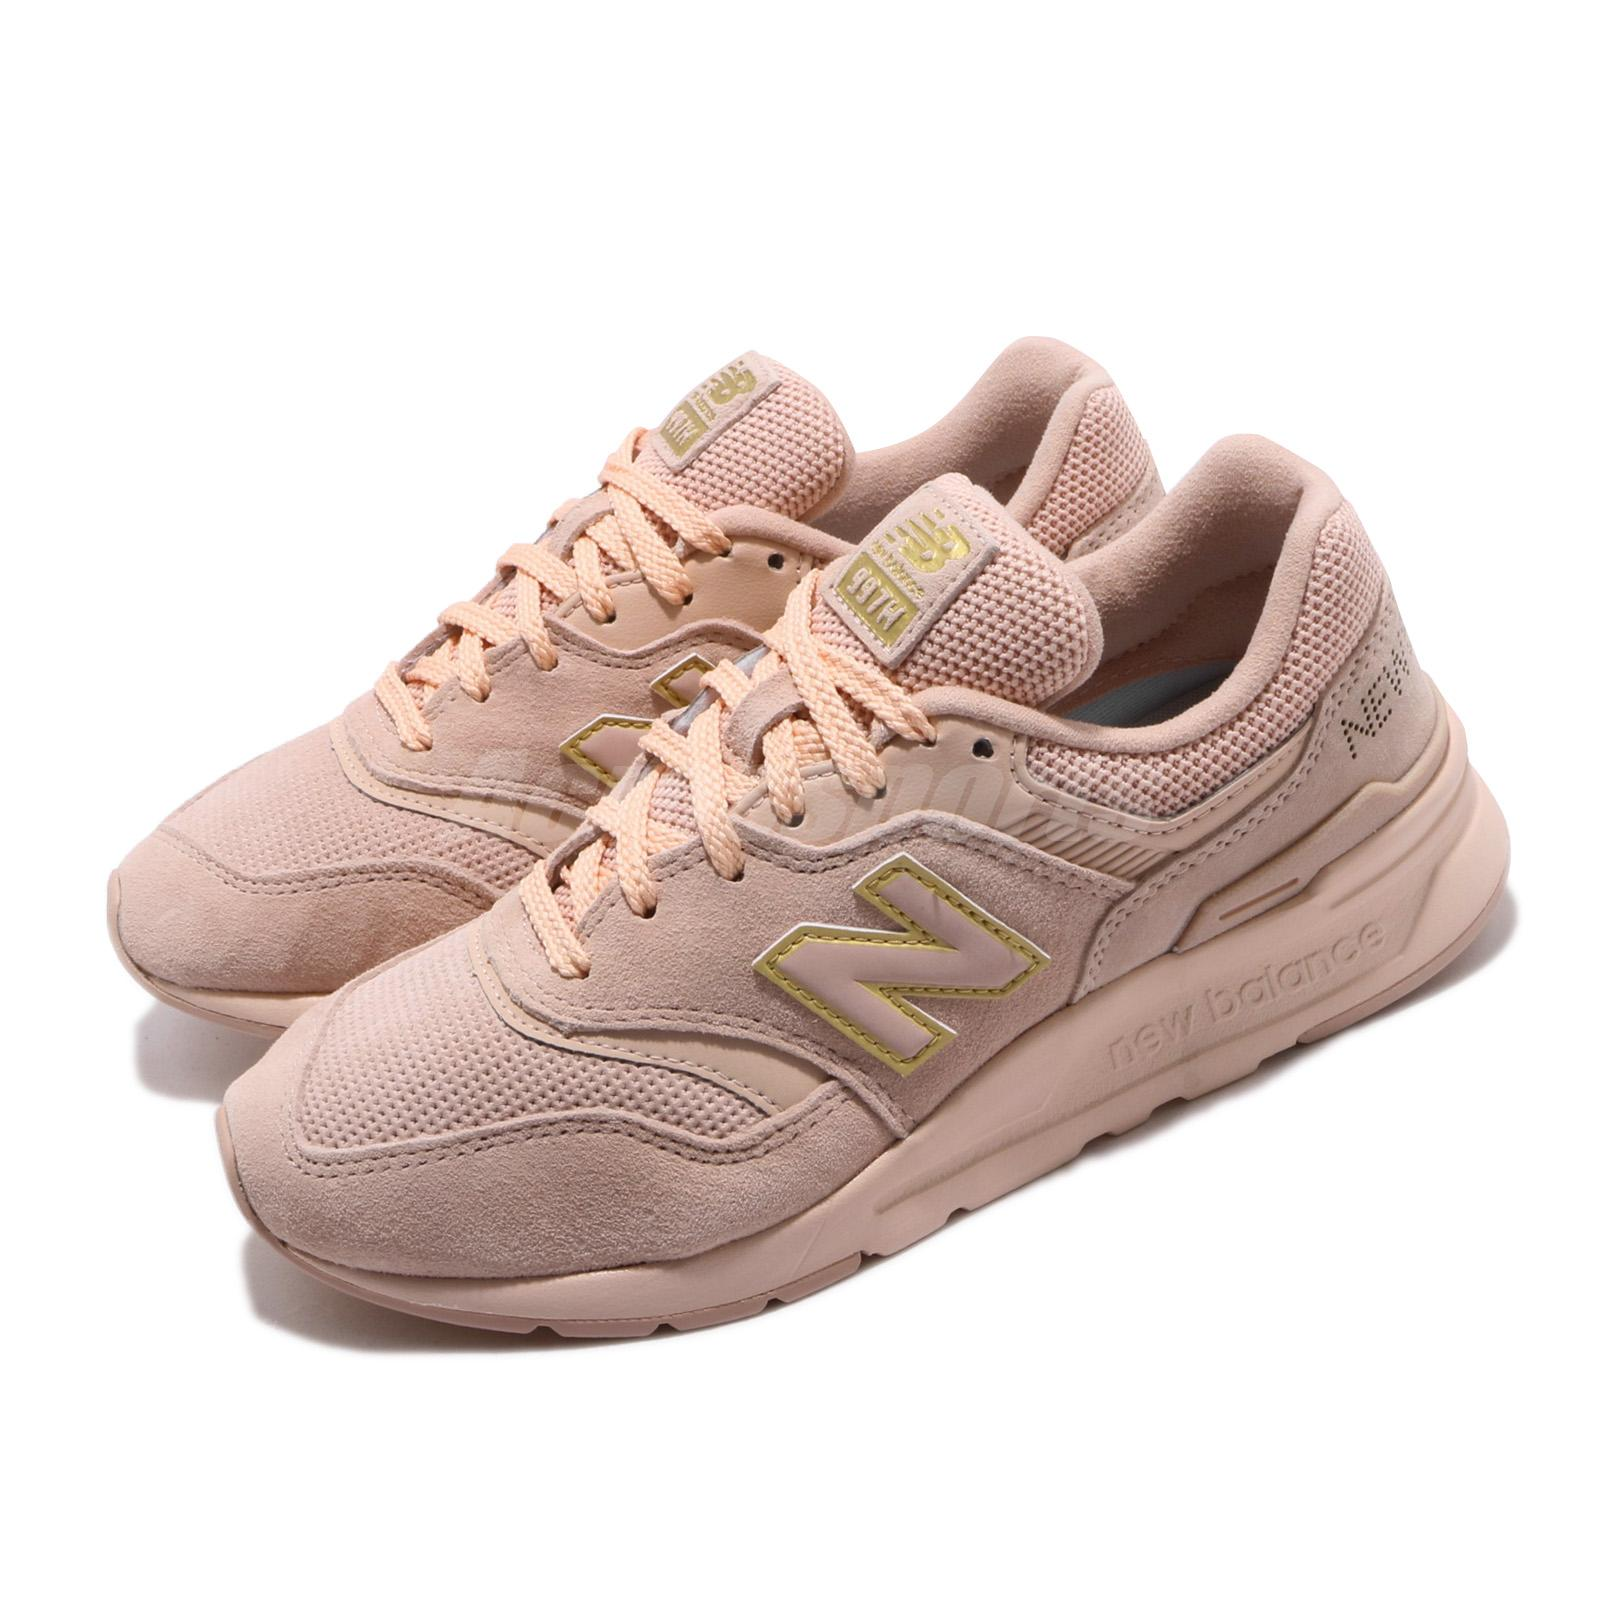 dd8f1f38d6 Details about New Balance CW997HCD B Pink Gold Women Running Casual Shoes  Sneakers CW997HCDB